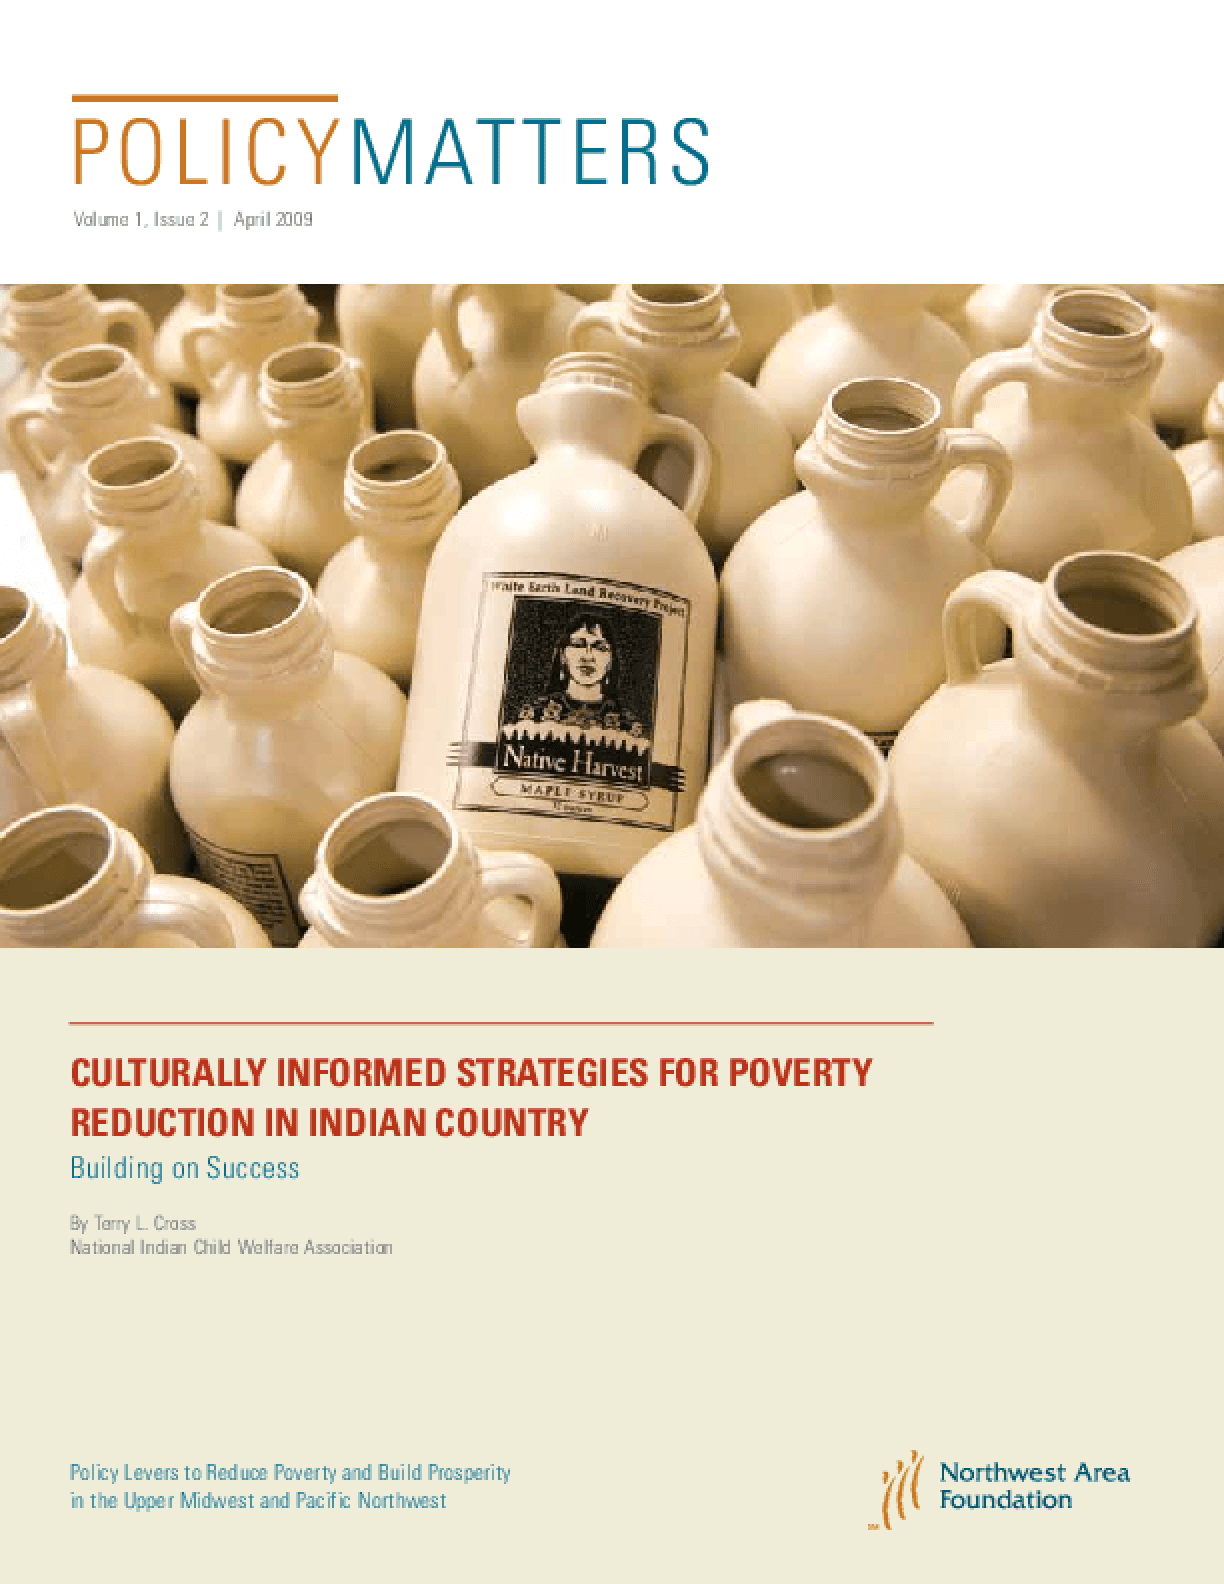 PolicyMatters: Culturally Informed Strategies for Poverty Reduction in Indian Country